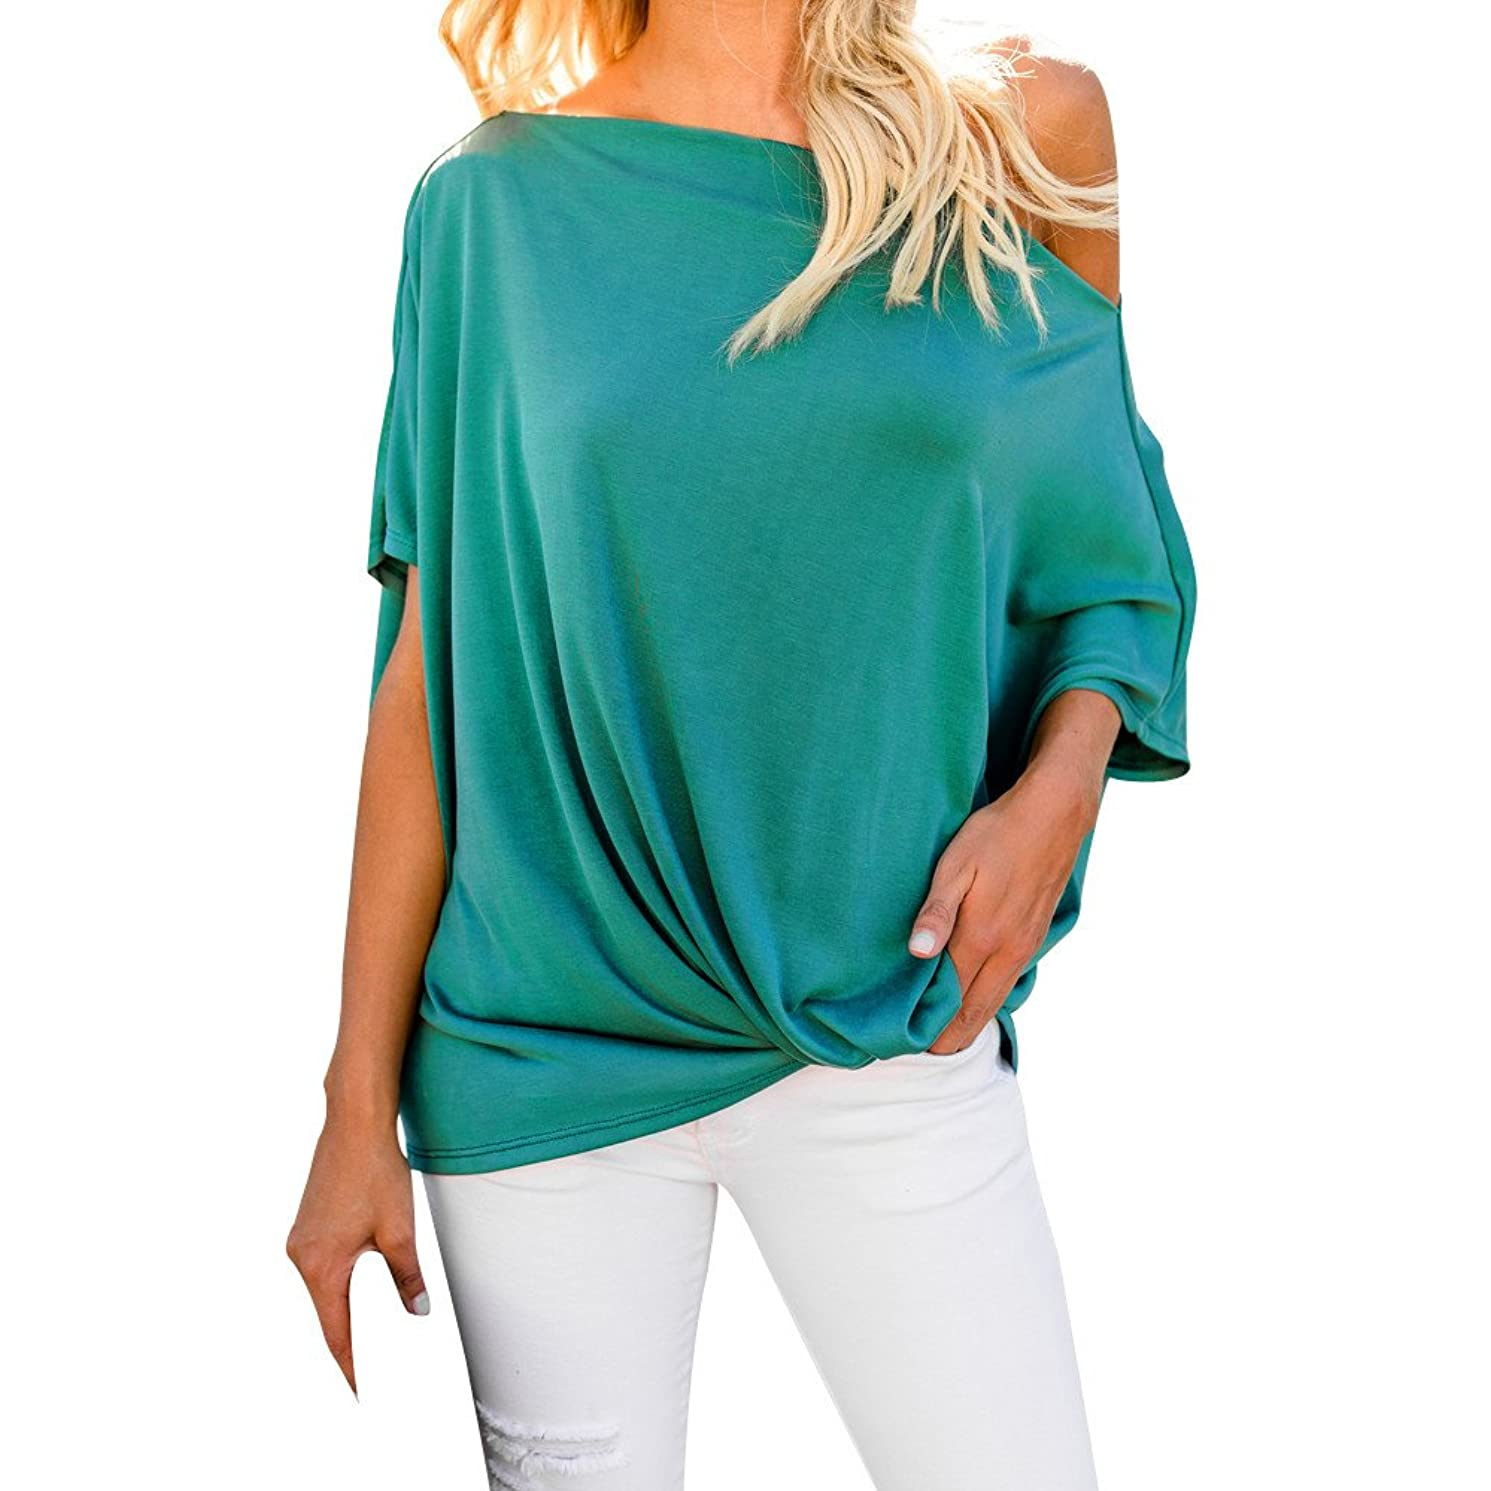 EKIMI Tops Women Off Shoulder Loose Pullover Sweater Batwing Sleeve Knit Jumper Top Blouse